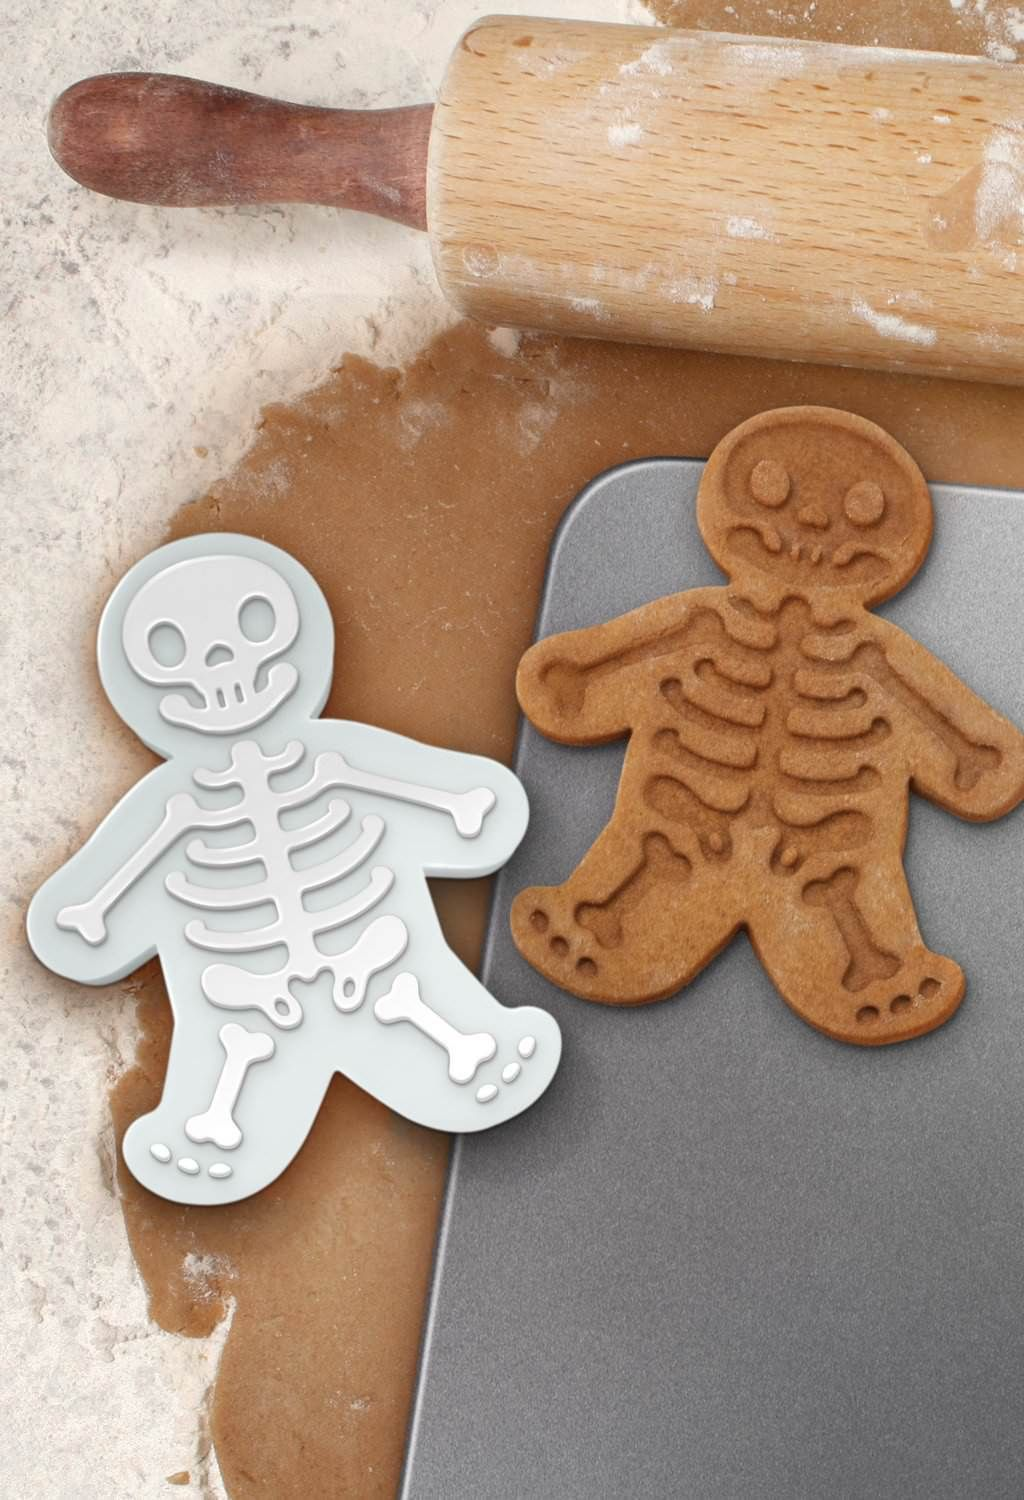 Gingerdead Man Cookie Cutter Products Gingerbread man